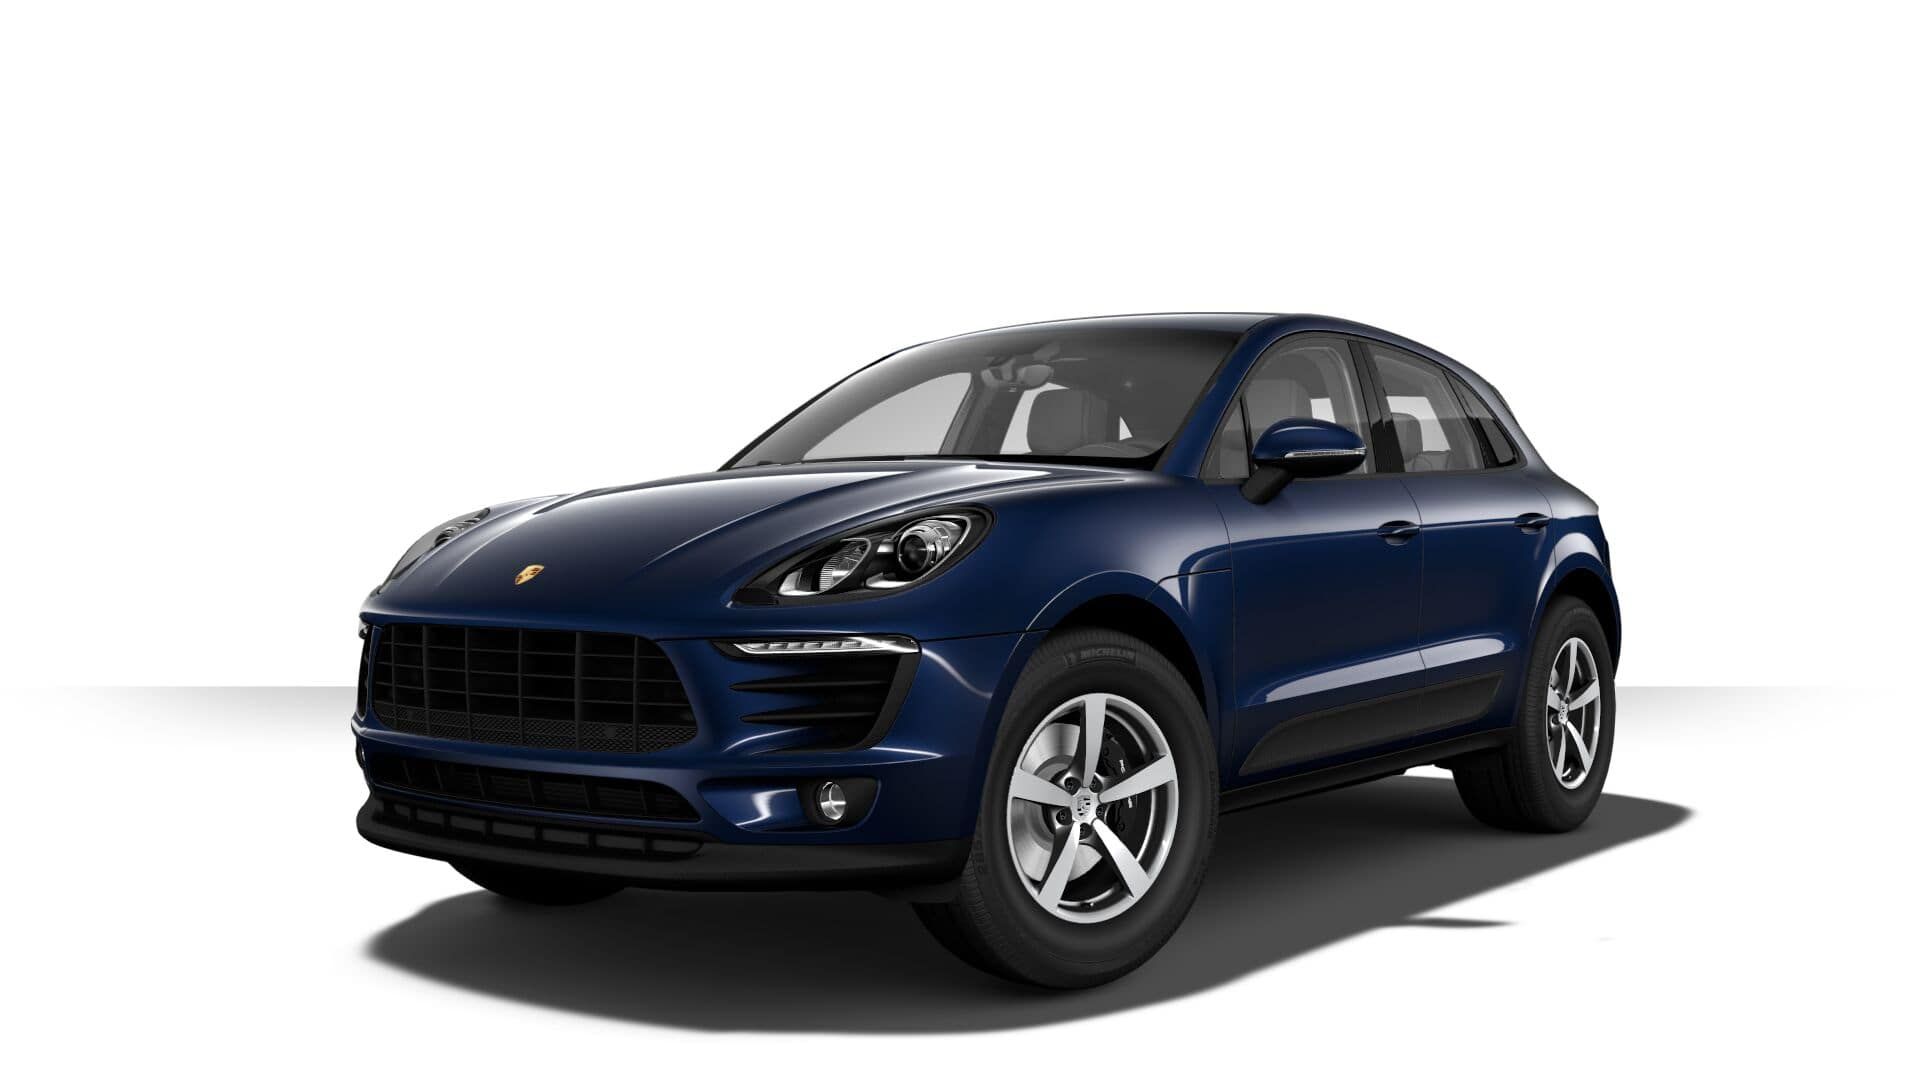 Porsche Macan Night Blue Metallic